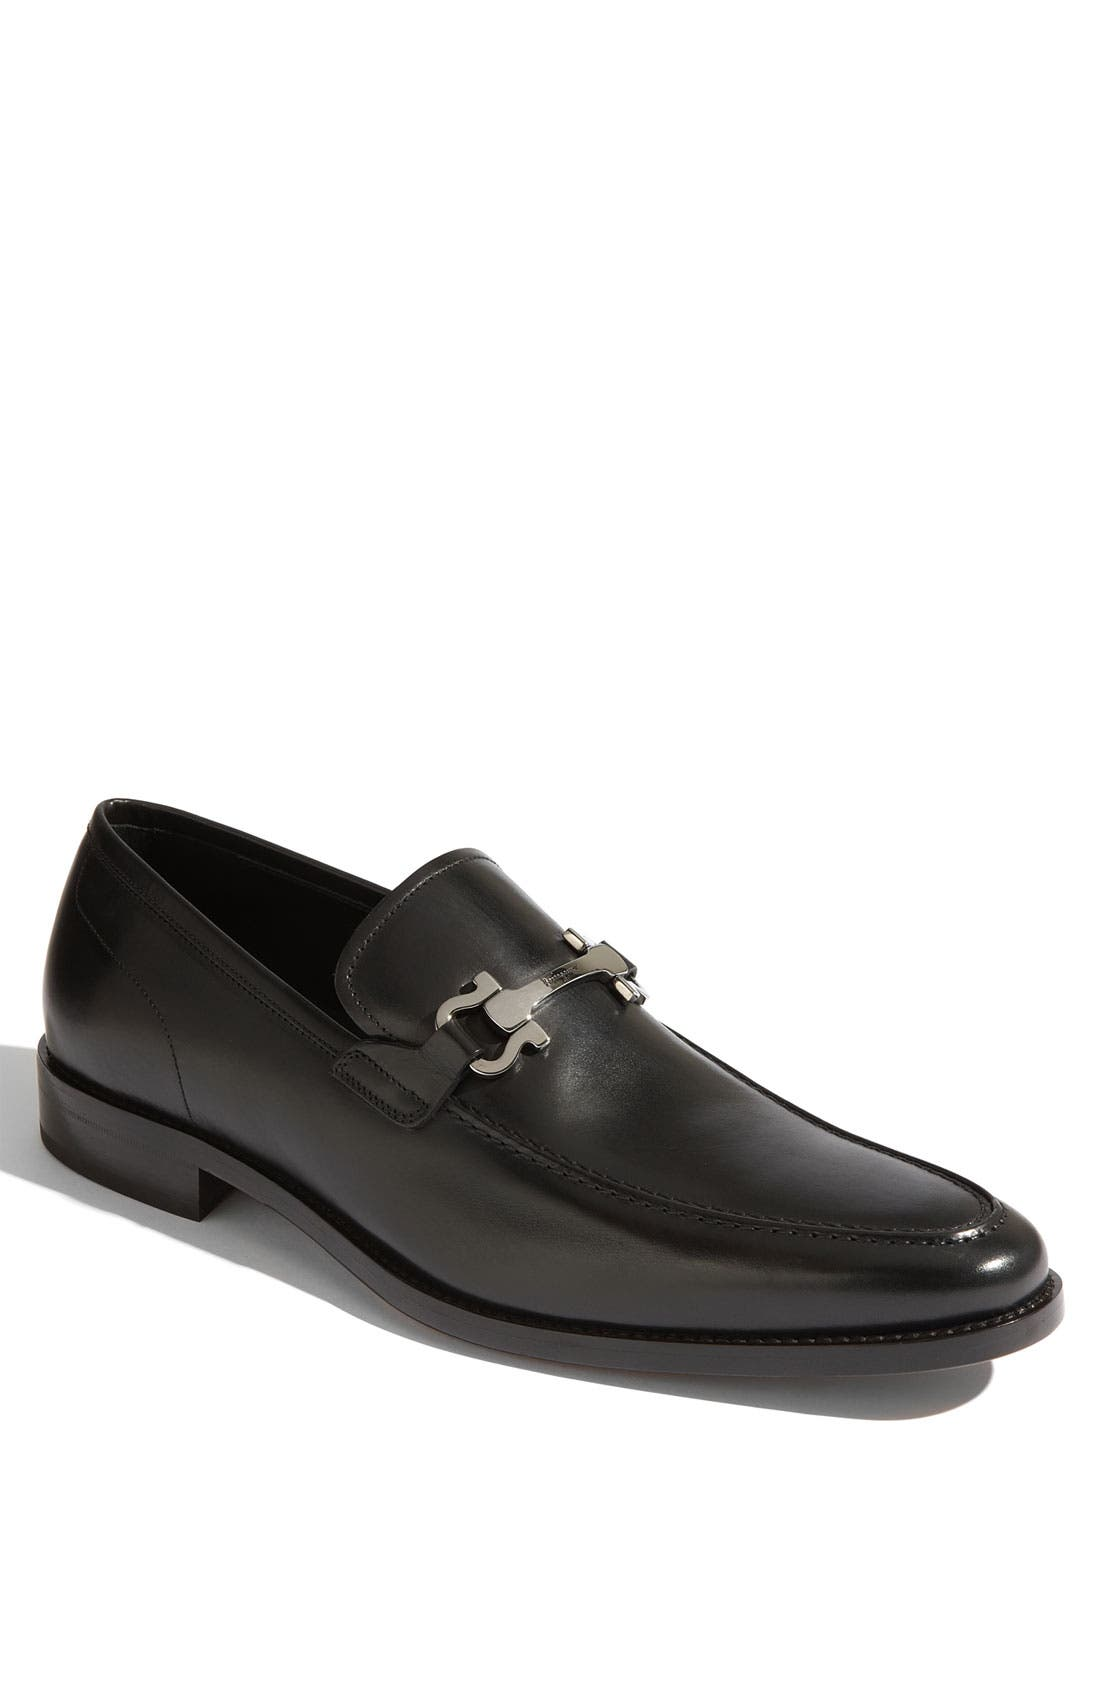 Main Image - Salvatore Ferragamo 'Clay' Loafer (Online Only)